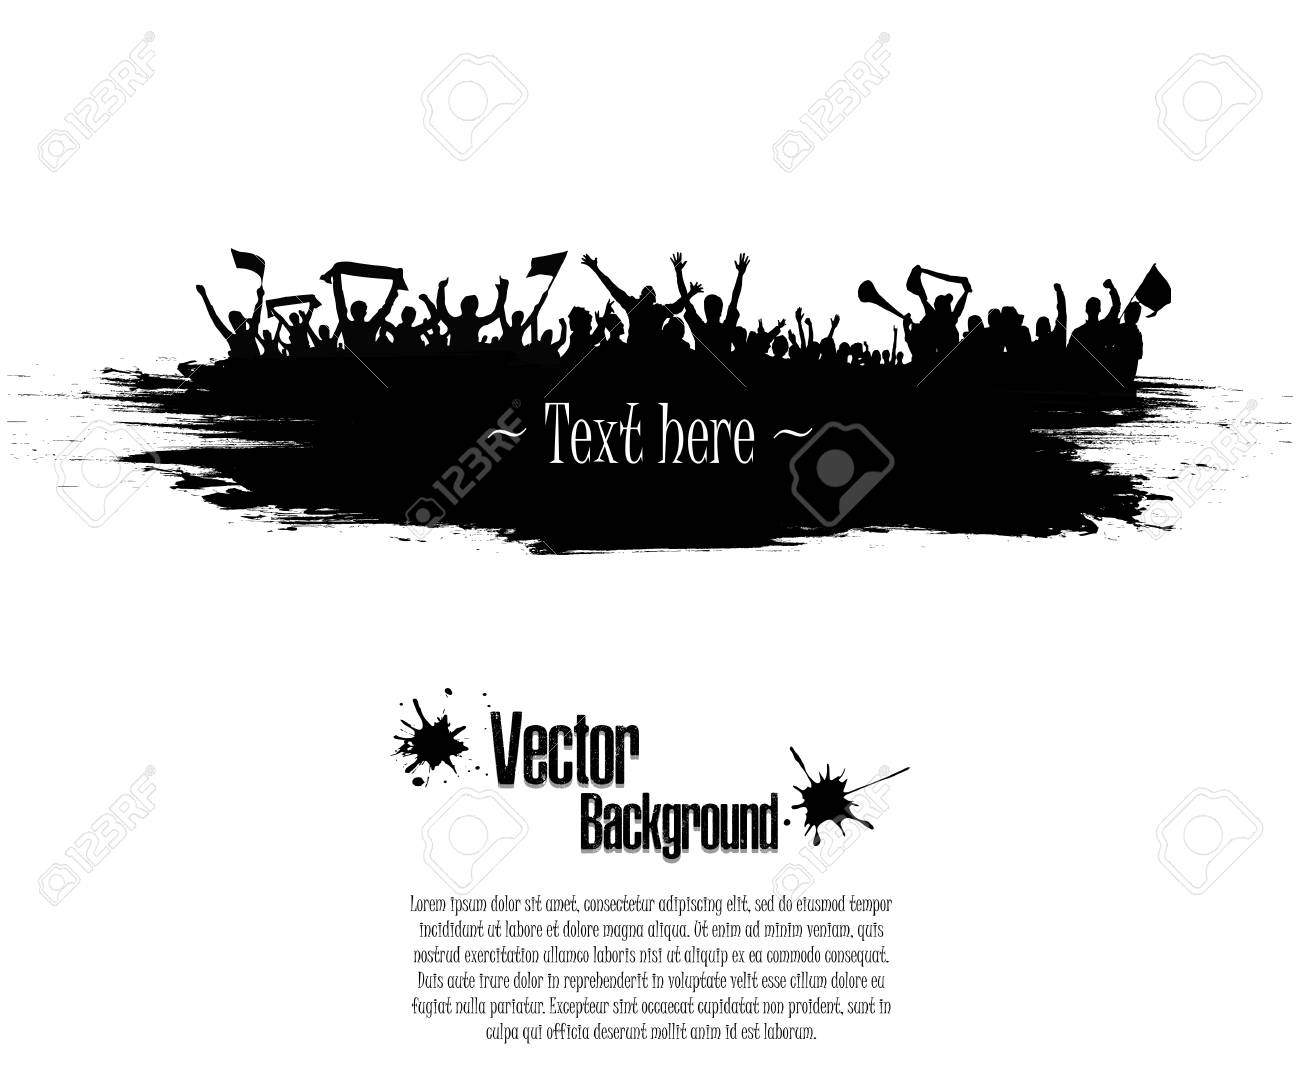 Grunge Background For Sporting Events And Concerts Grunge Banner Royalty Free Cliparts Vectors And Stock Illustration Image 104727922